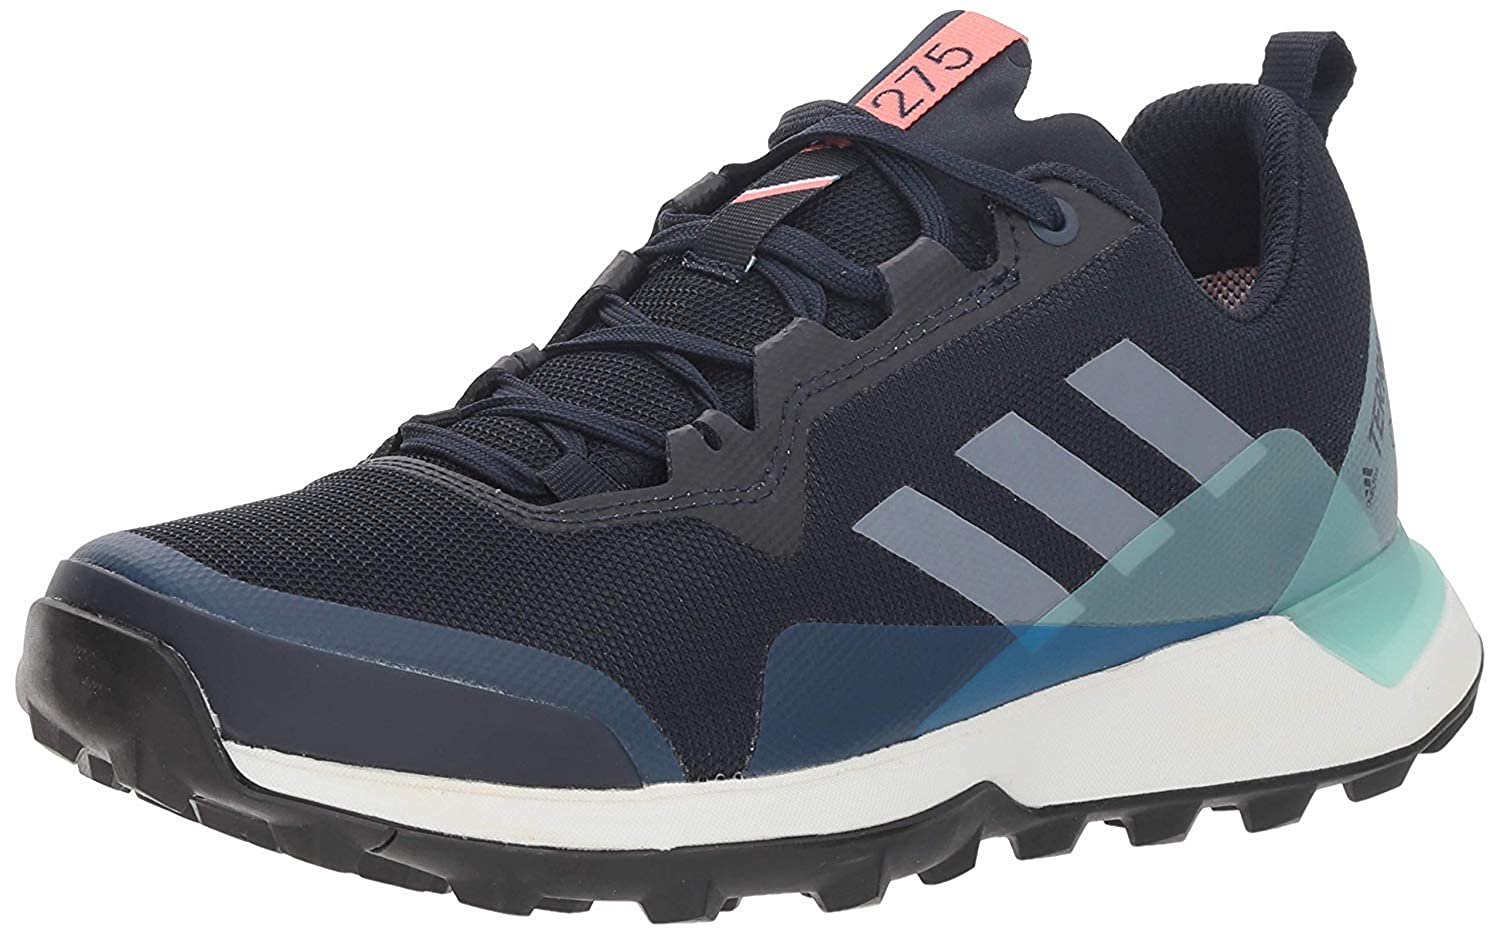 discapacidades estructurales vendible vista previa de Adidas Outdoor Women's Terrex CMTK GTX W, Legend Ink/Crystal White/Clear  Mint, 6 B US: Buy Online at Low Prices in India - Amazon.in